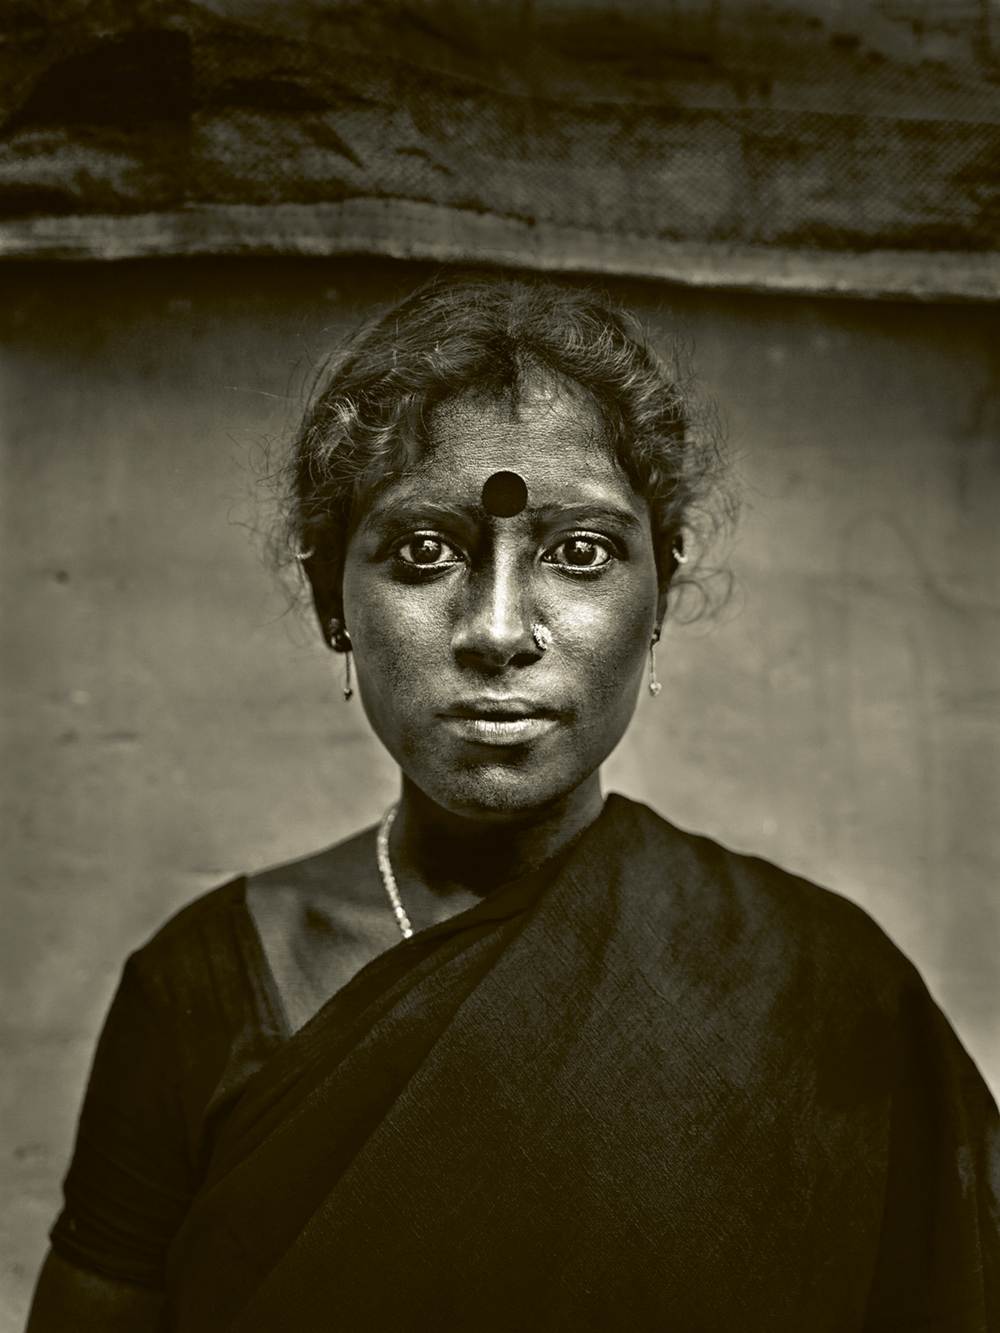 Lovely photo of young woman in India. Photo © Andreas H. Bitesnich. All rights reserved. Come discover 3 Inspiring Art & Design Books on My Nightstand This Minute I Am Loving!